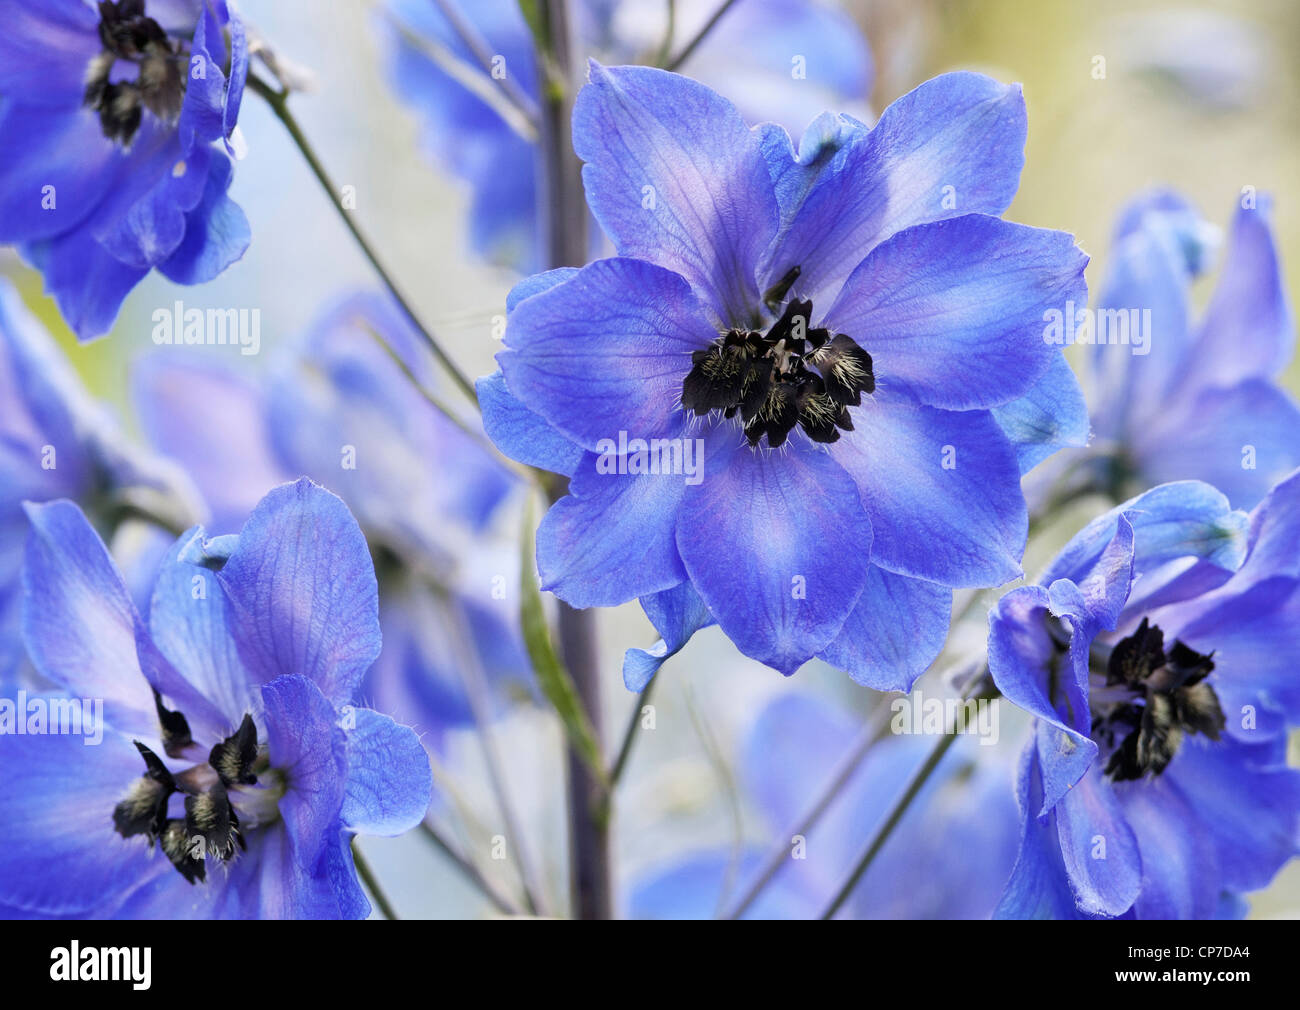 Delphinium 'After Midnight', close up of abundant blue flowers on a single stem. - Stock Image